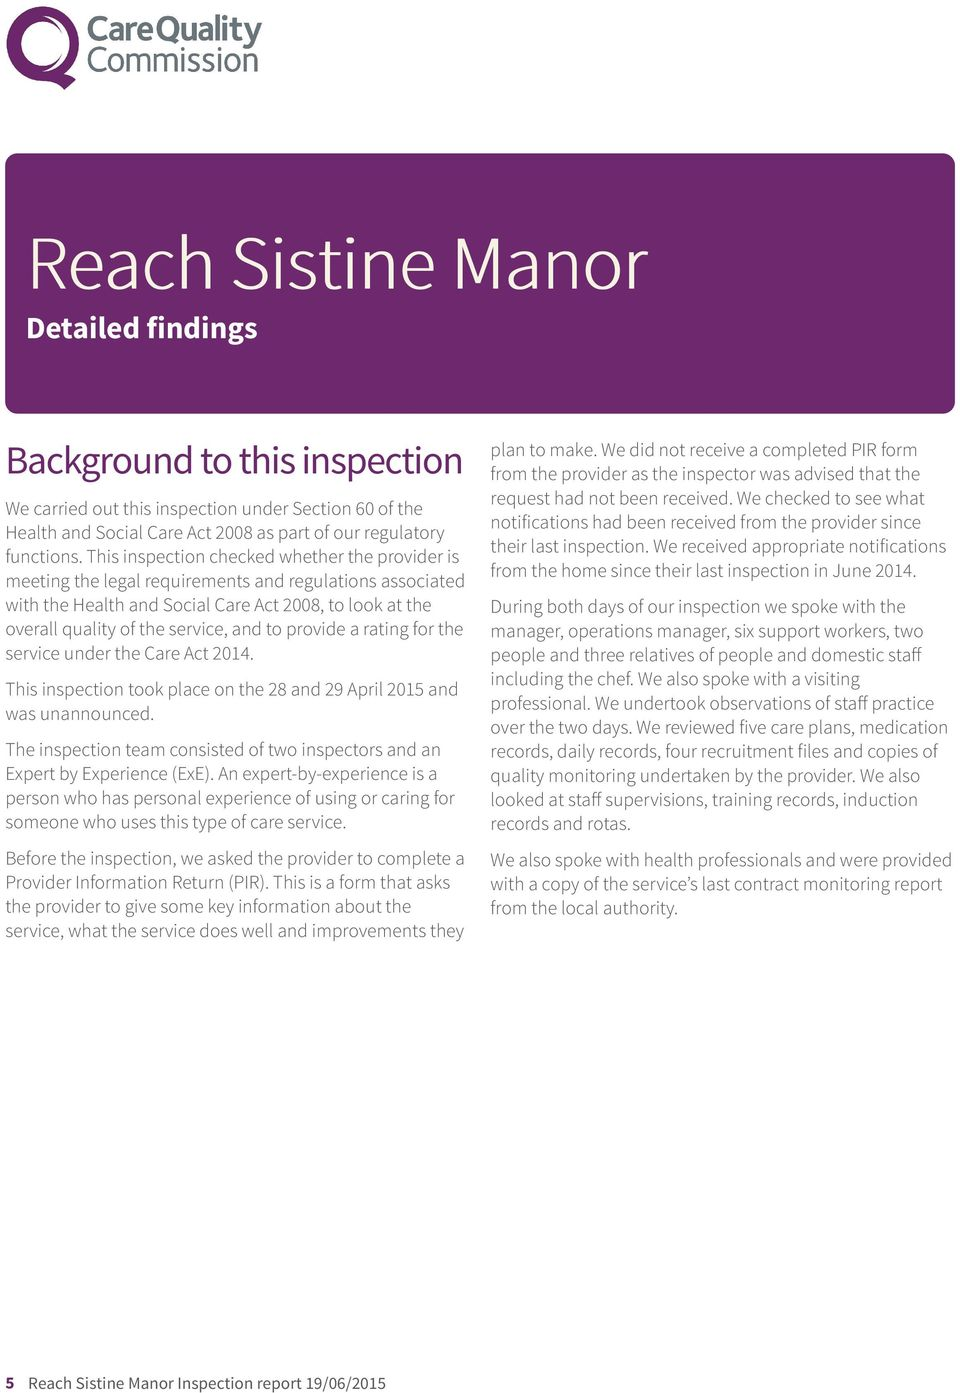 to provide a rating for the service under the Care Act 2014. This inspection took place on the 28 and 29 April 2015 and was unannounced.